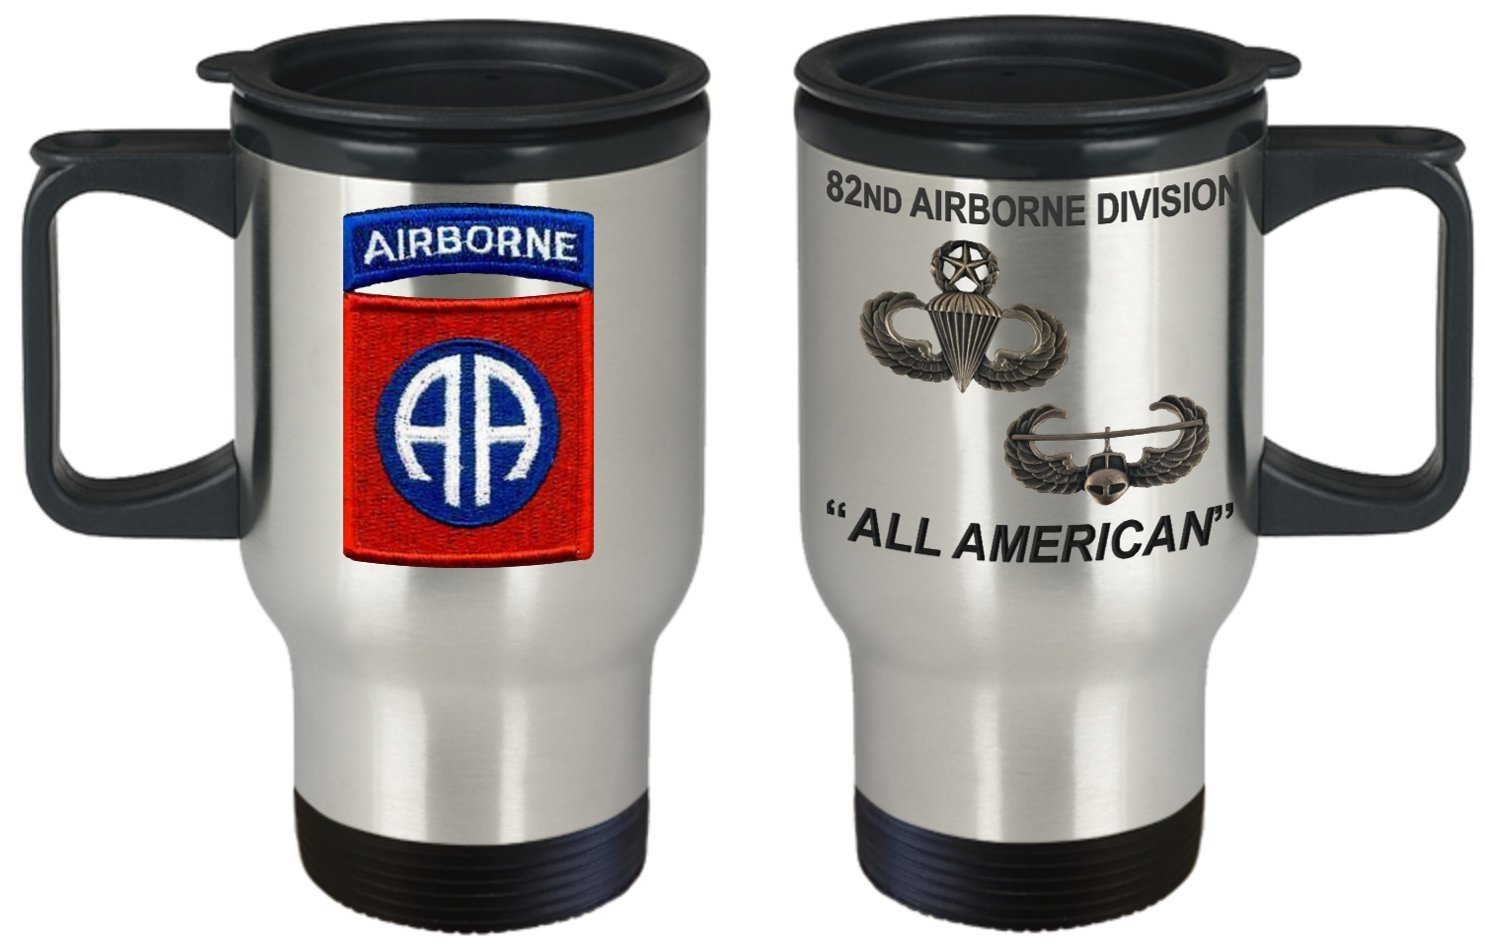 82ND AIRBORNE Military Stainless Steel 14 oz Travel Mug - 82 ABN Crest with Master Jump Master and Air Assault Wings - All American Travel Mug - America's ABN DIV! by Marie'sMerch